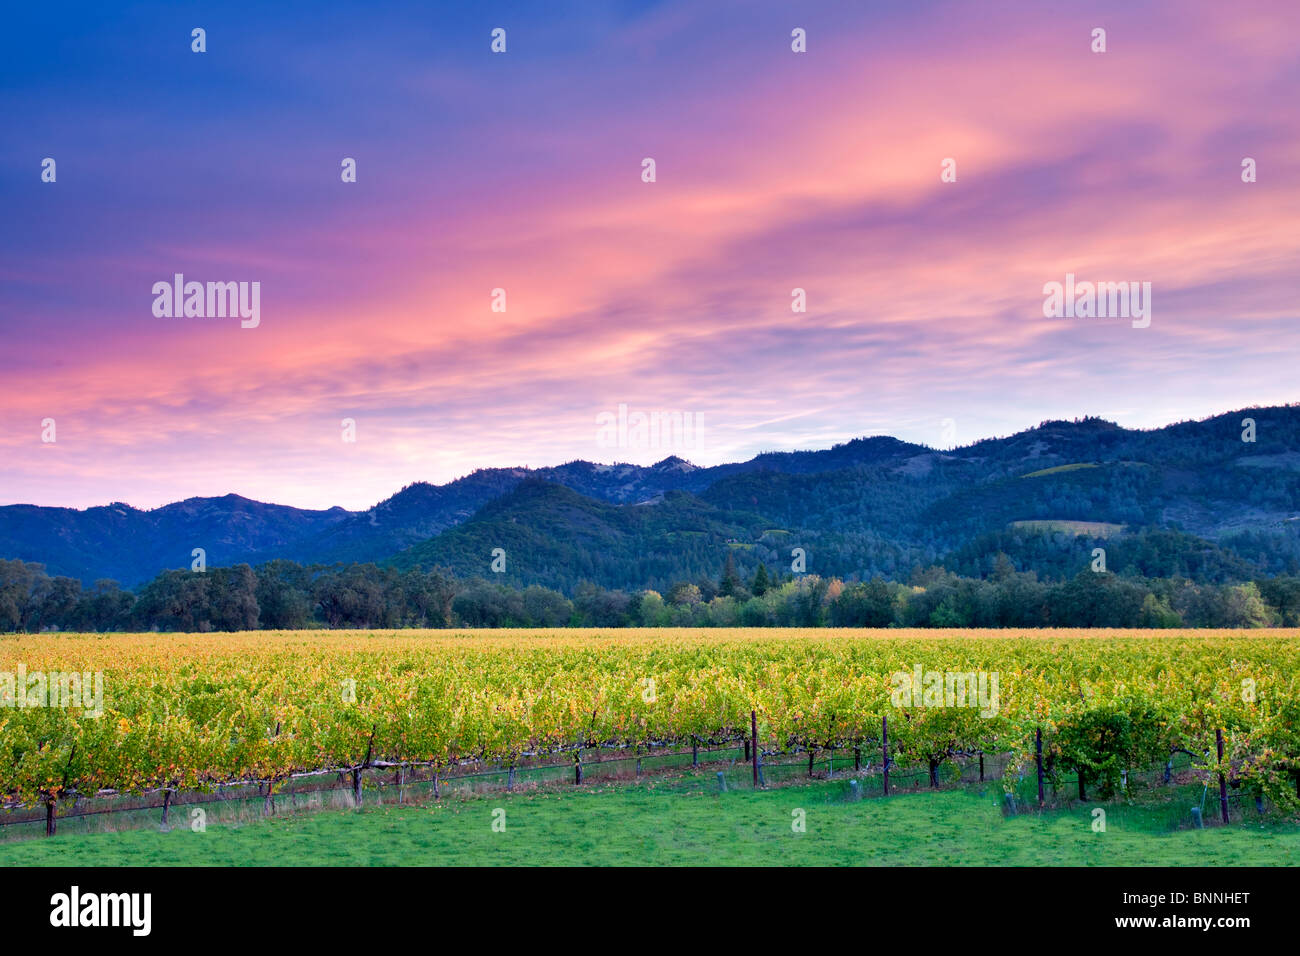 Alba sul Napa Valley vineyard con Autunno a colori. California Foto Stock